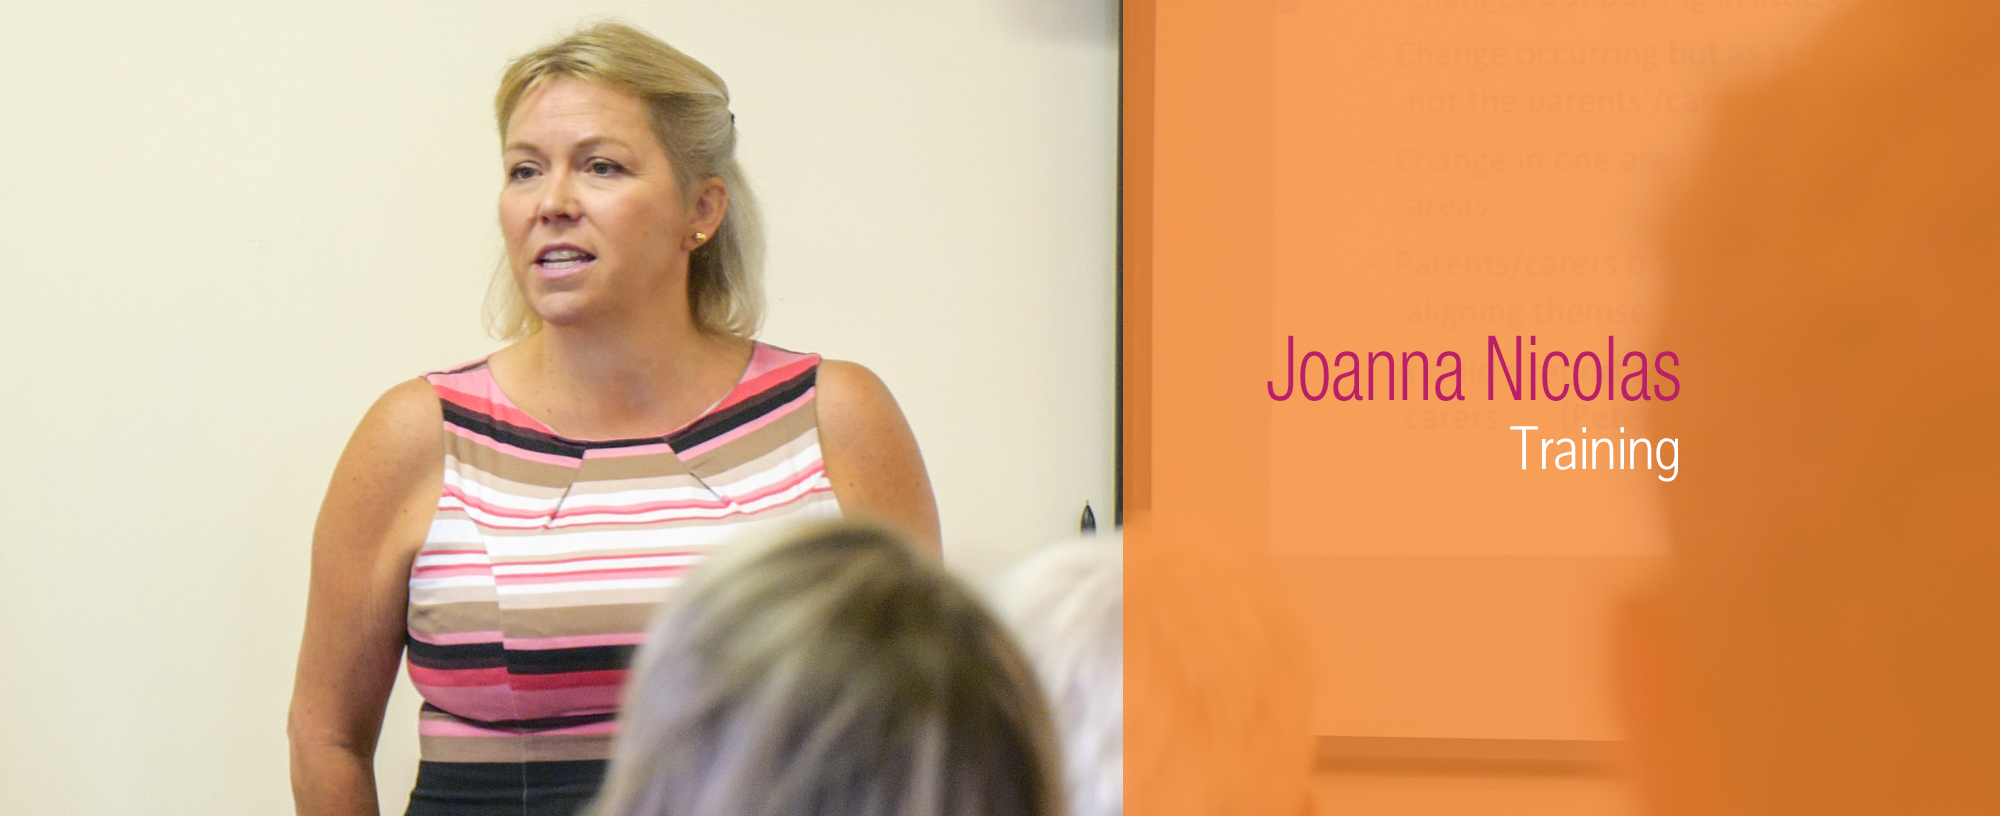 joanna nicolas training header image web